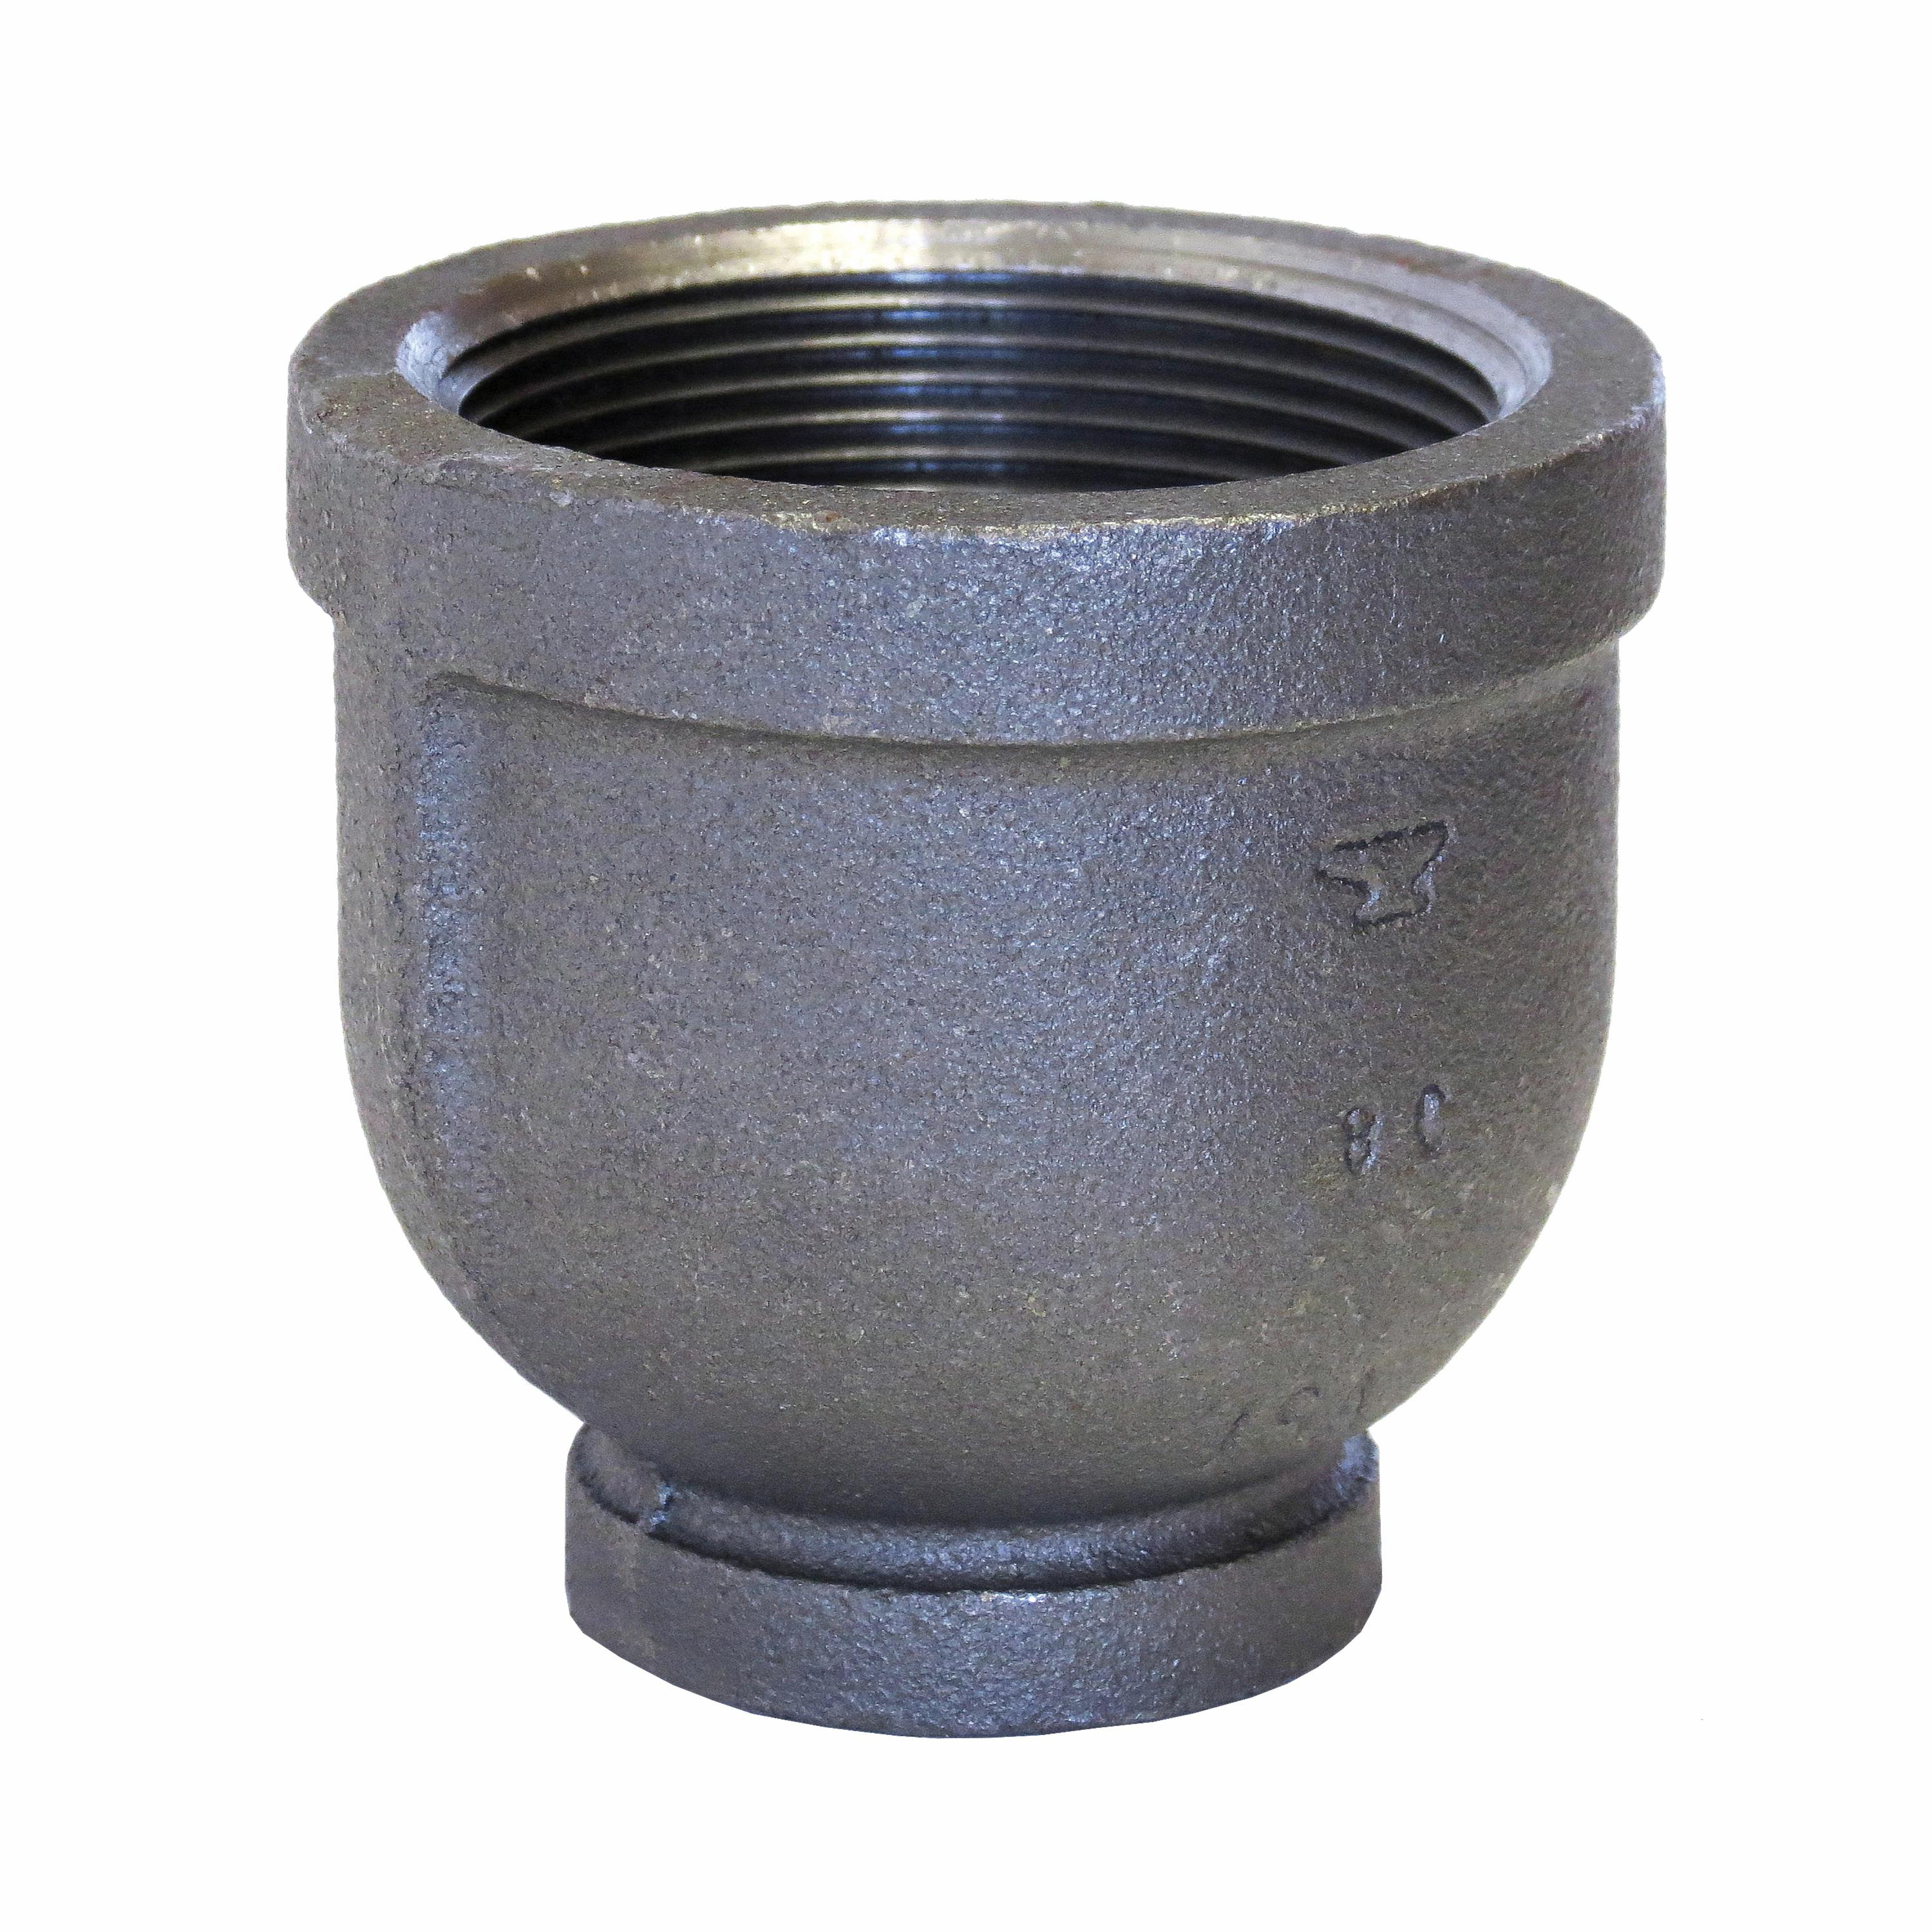 Anvil® 0811093012 Reducer, 4 x 2 in, Malleable Iron, Galvanized, Import